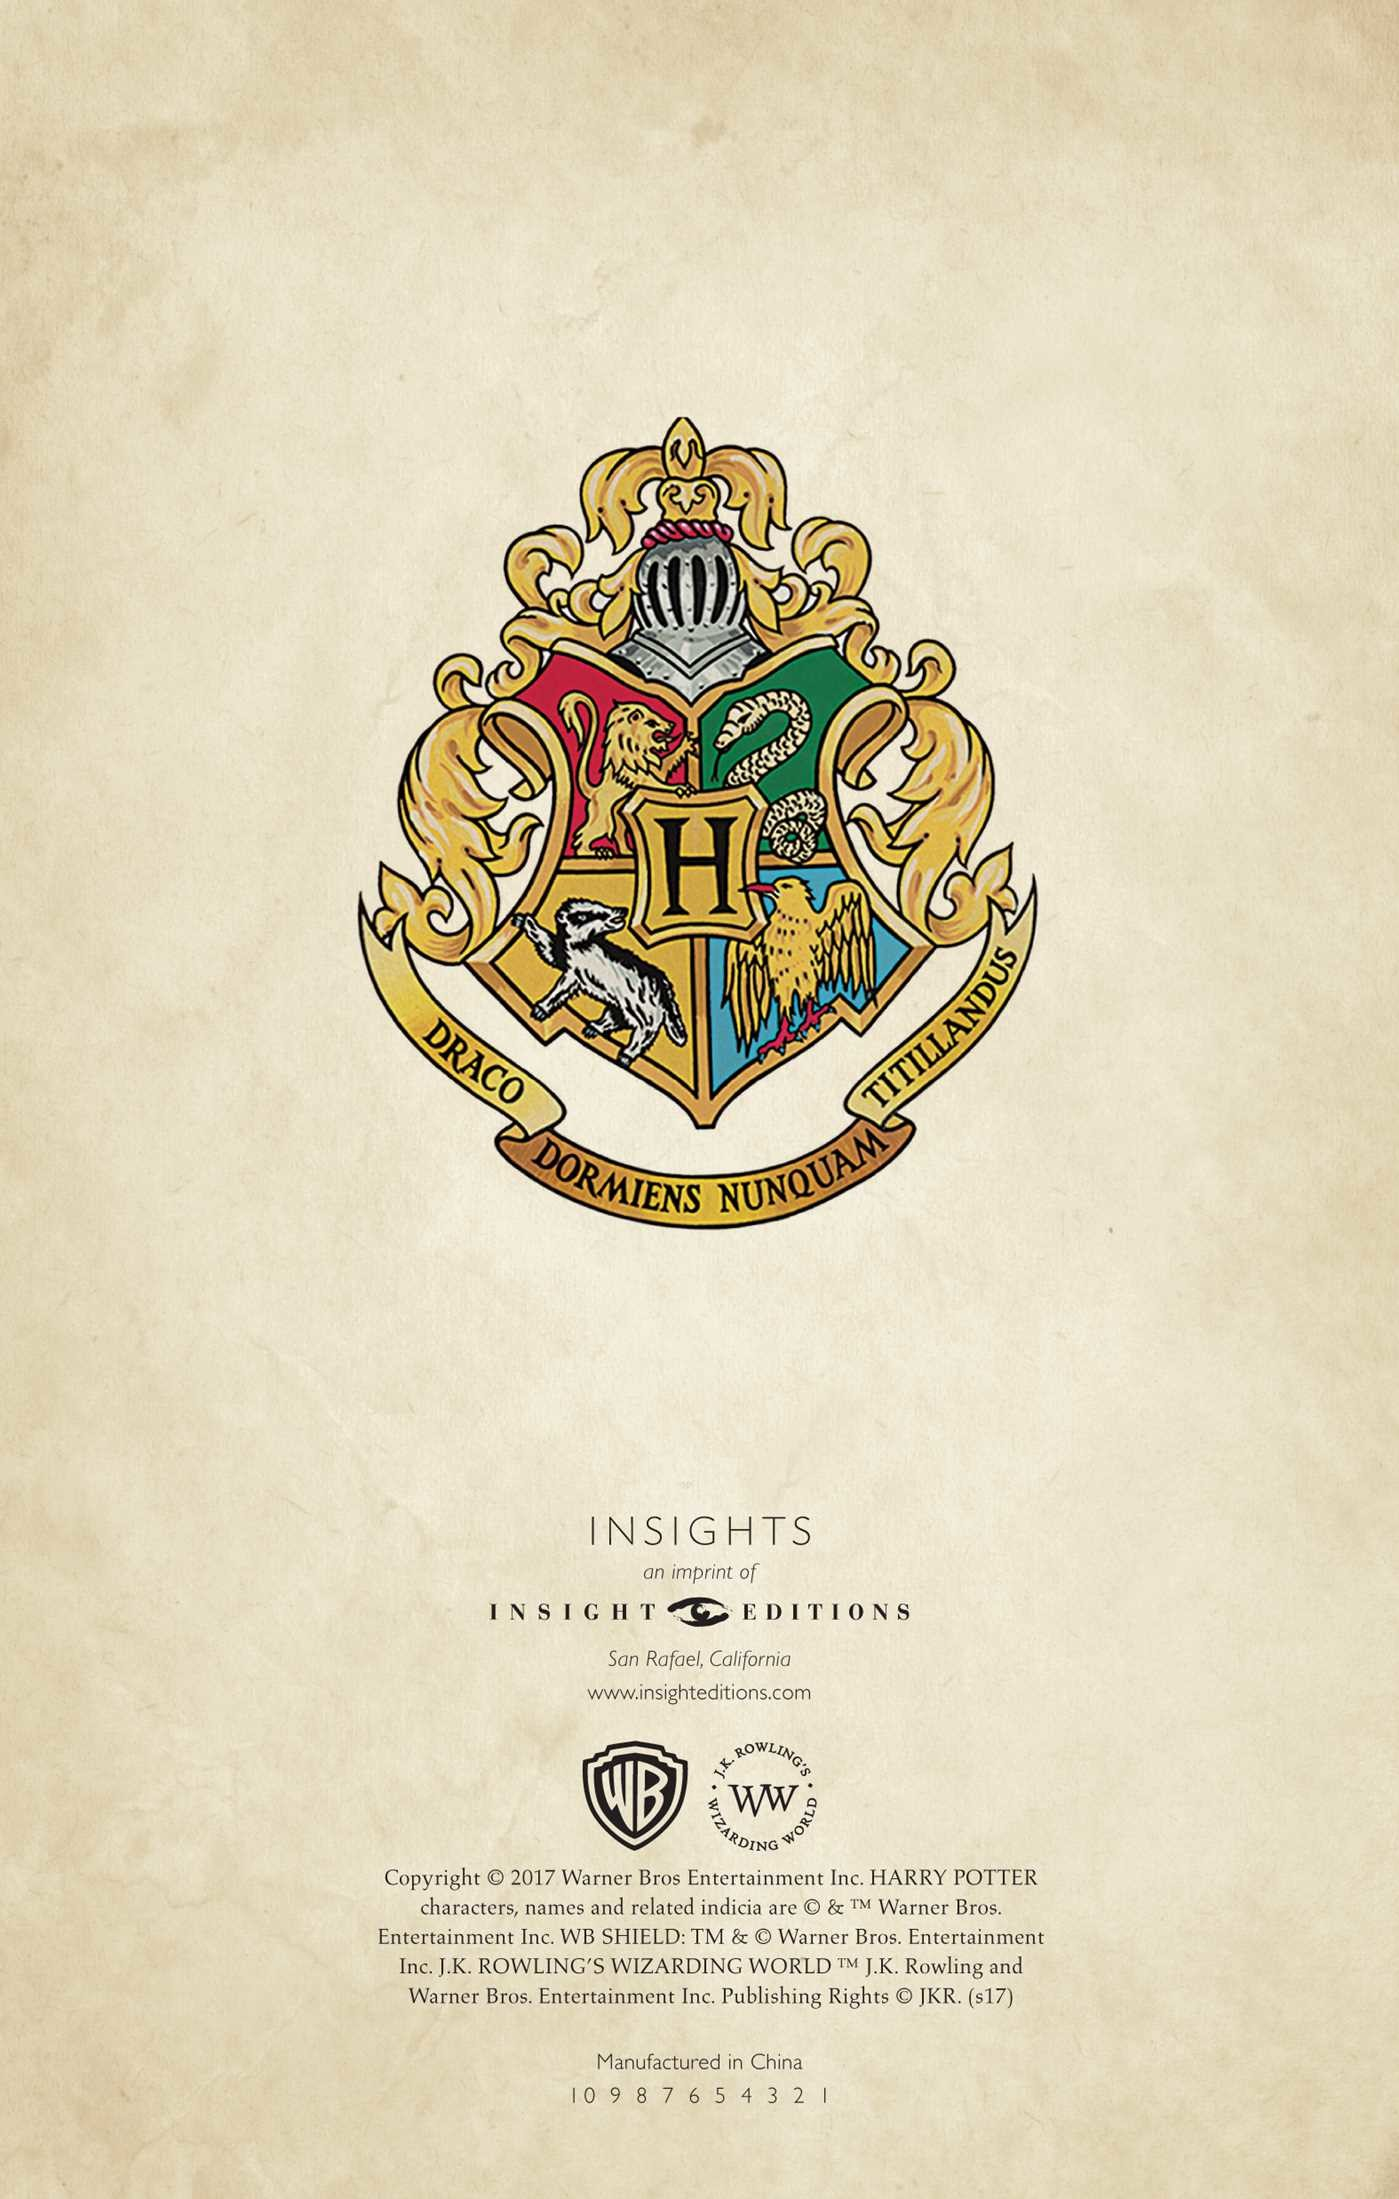 Harry potter hogwarts ruled notebook book by insight editions harry potter hogwarts ruled notebook 978168383285003 biocorpaavc